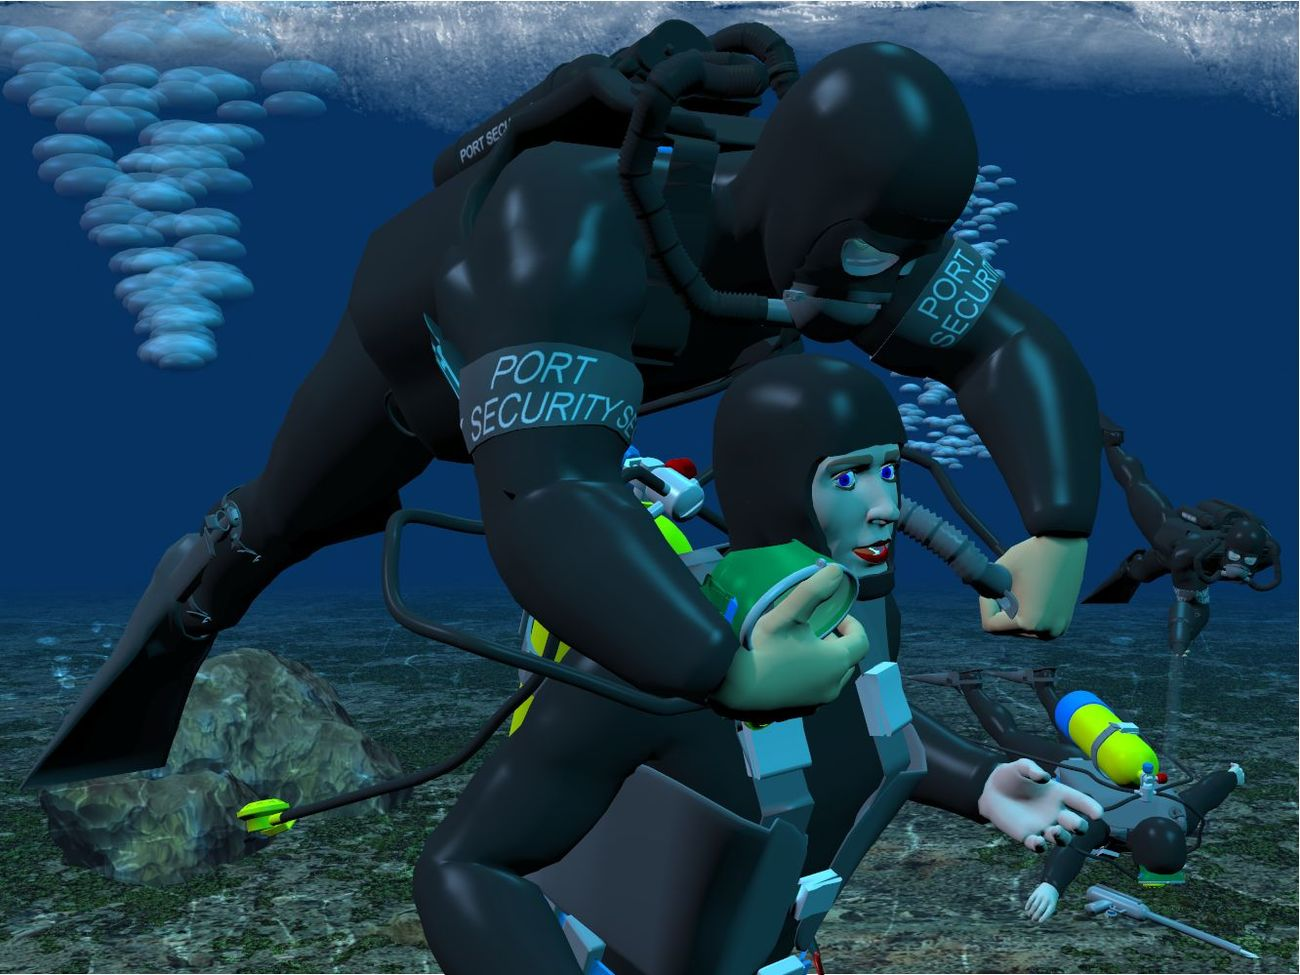 Harbor Patrol frogmen catch two more by Anthony Appleyard